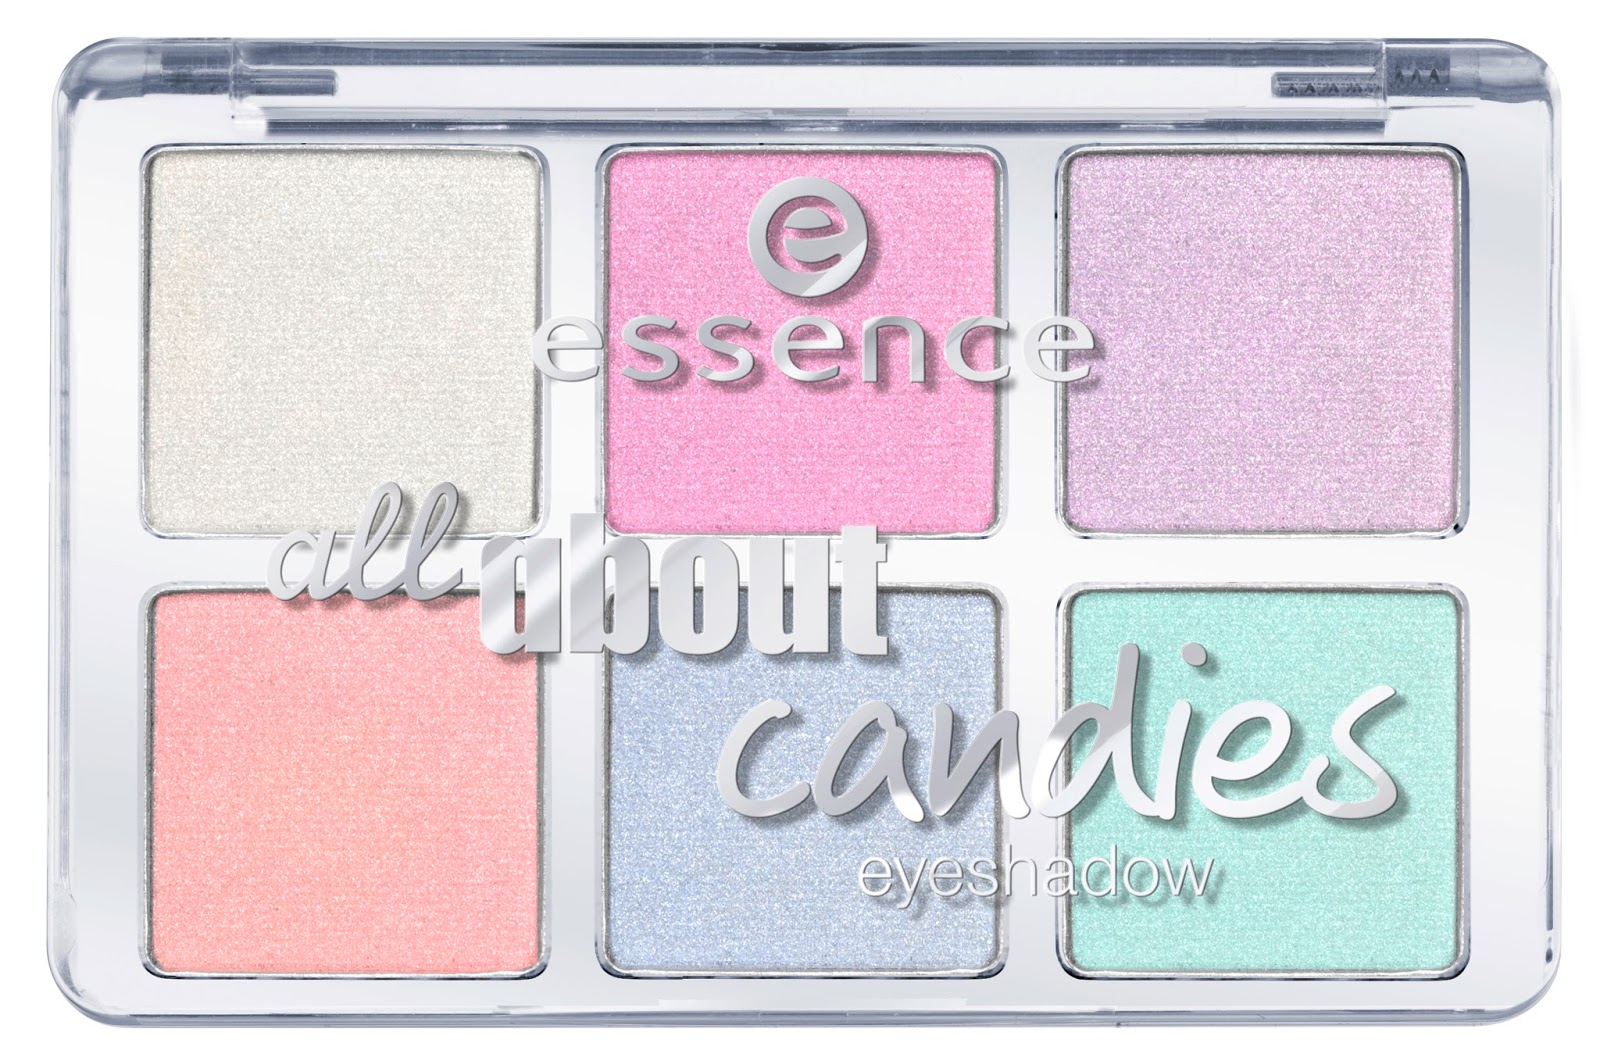 essence new in town – all about candies eyeshadow palette